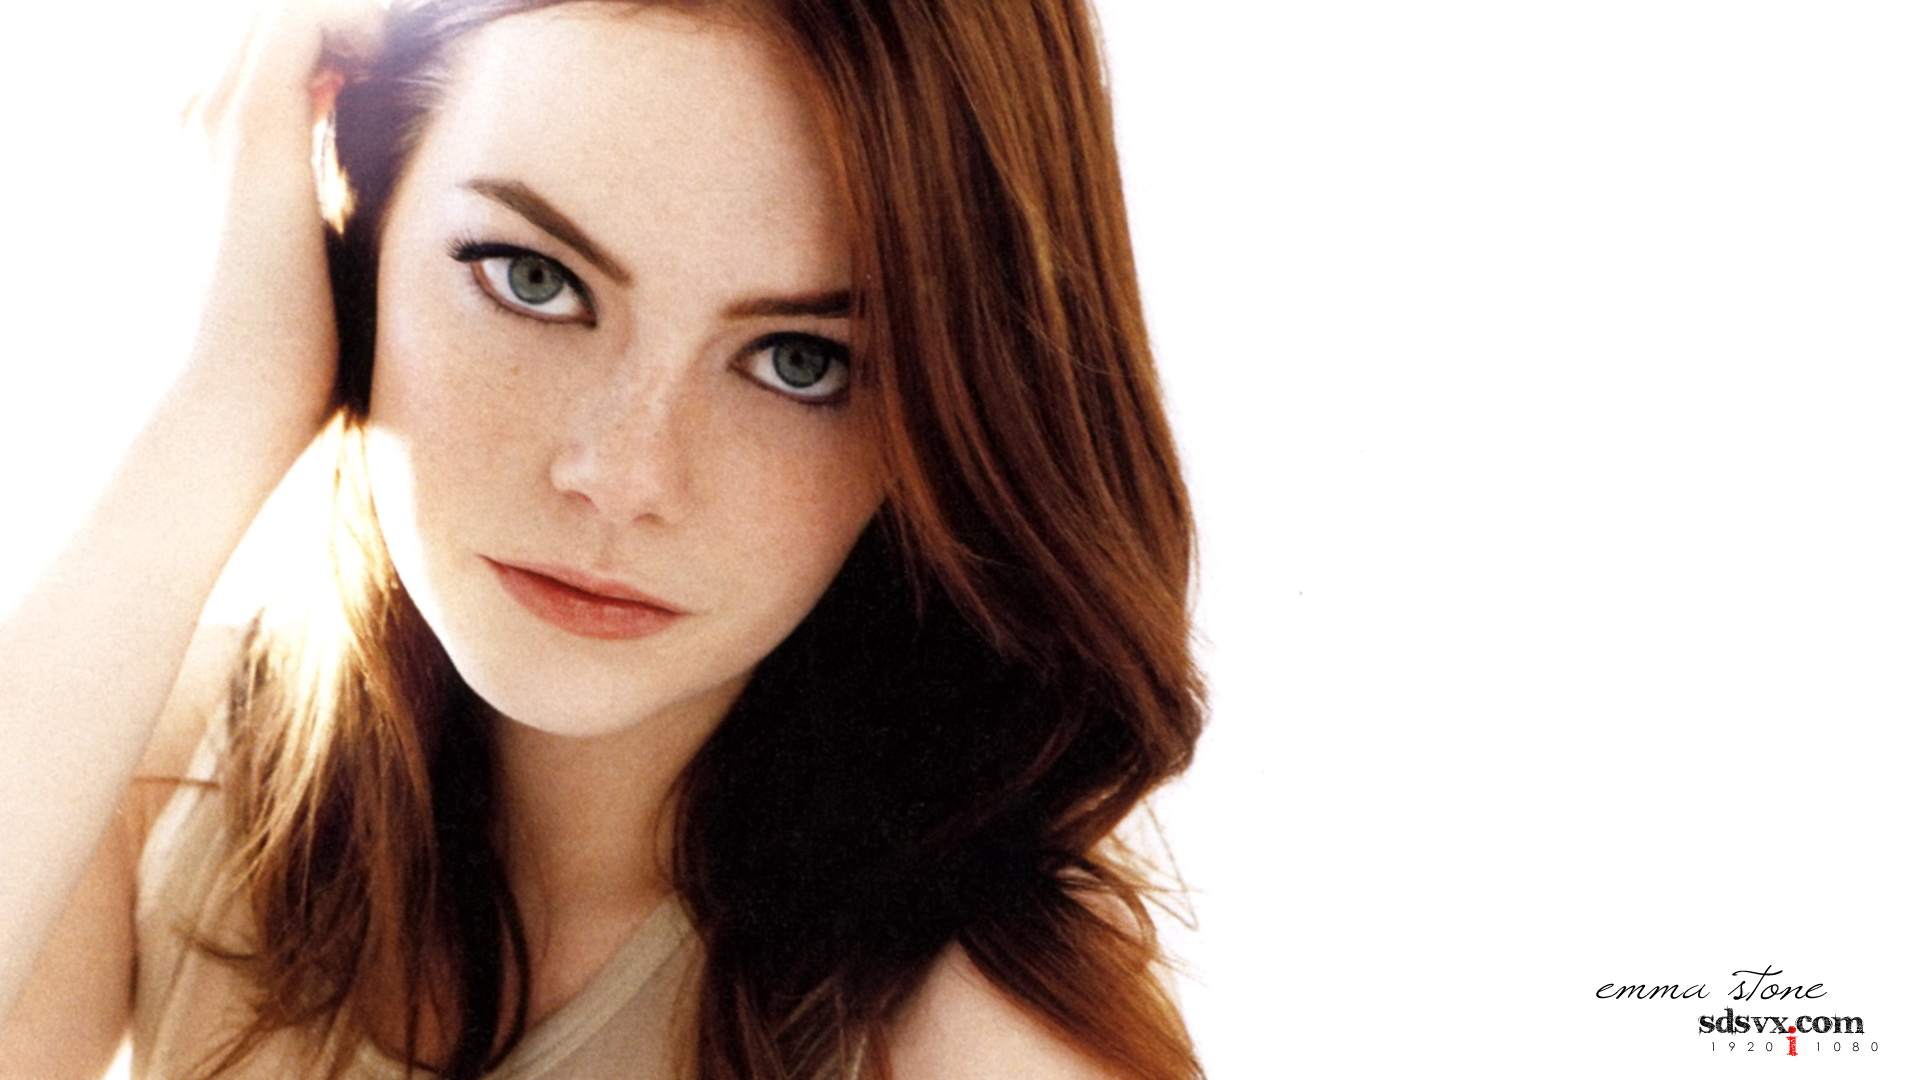 Emma Stone HD Wallpaper | Background Image | 1920x1080 | ID:122024 - Wallpaper Abyss